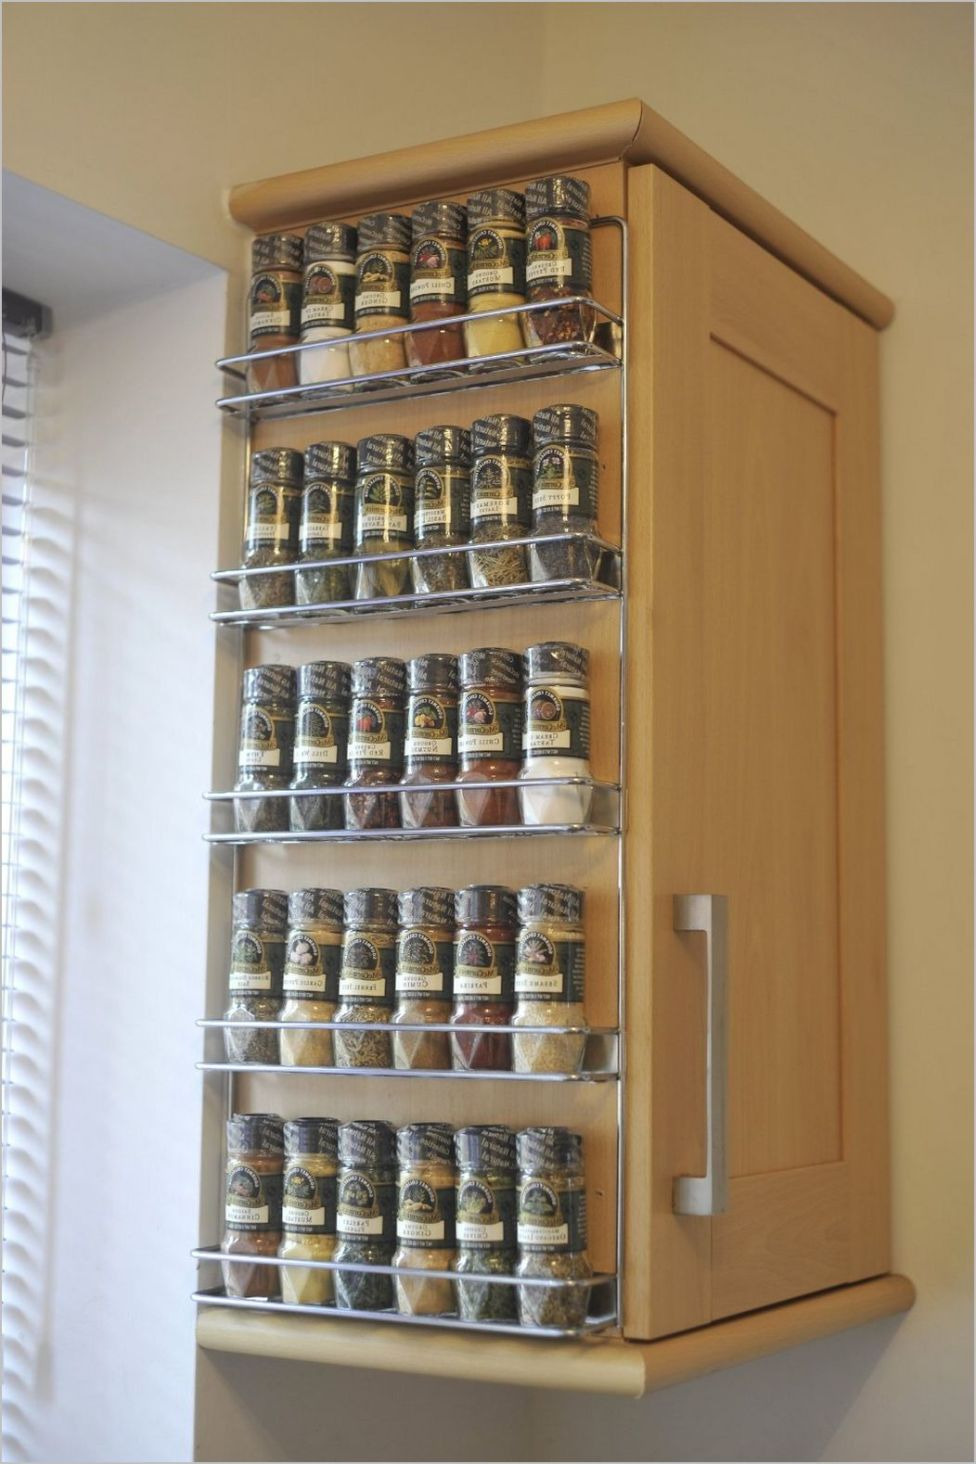 wall spice rack ideas home interior design styles kitchen narrow spice shelf narrow spice cabinet